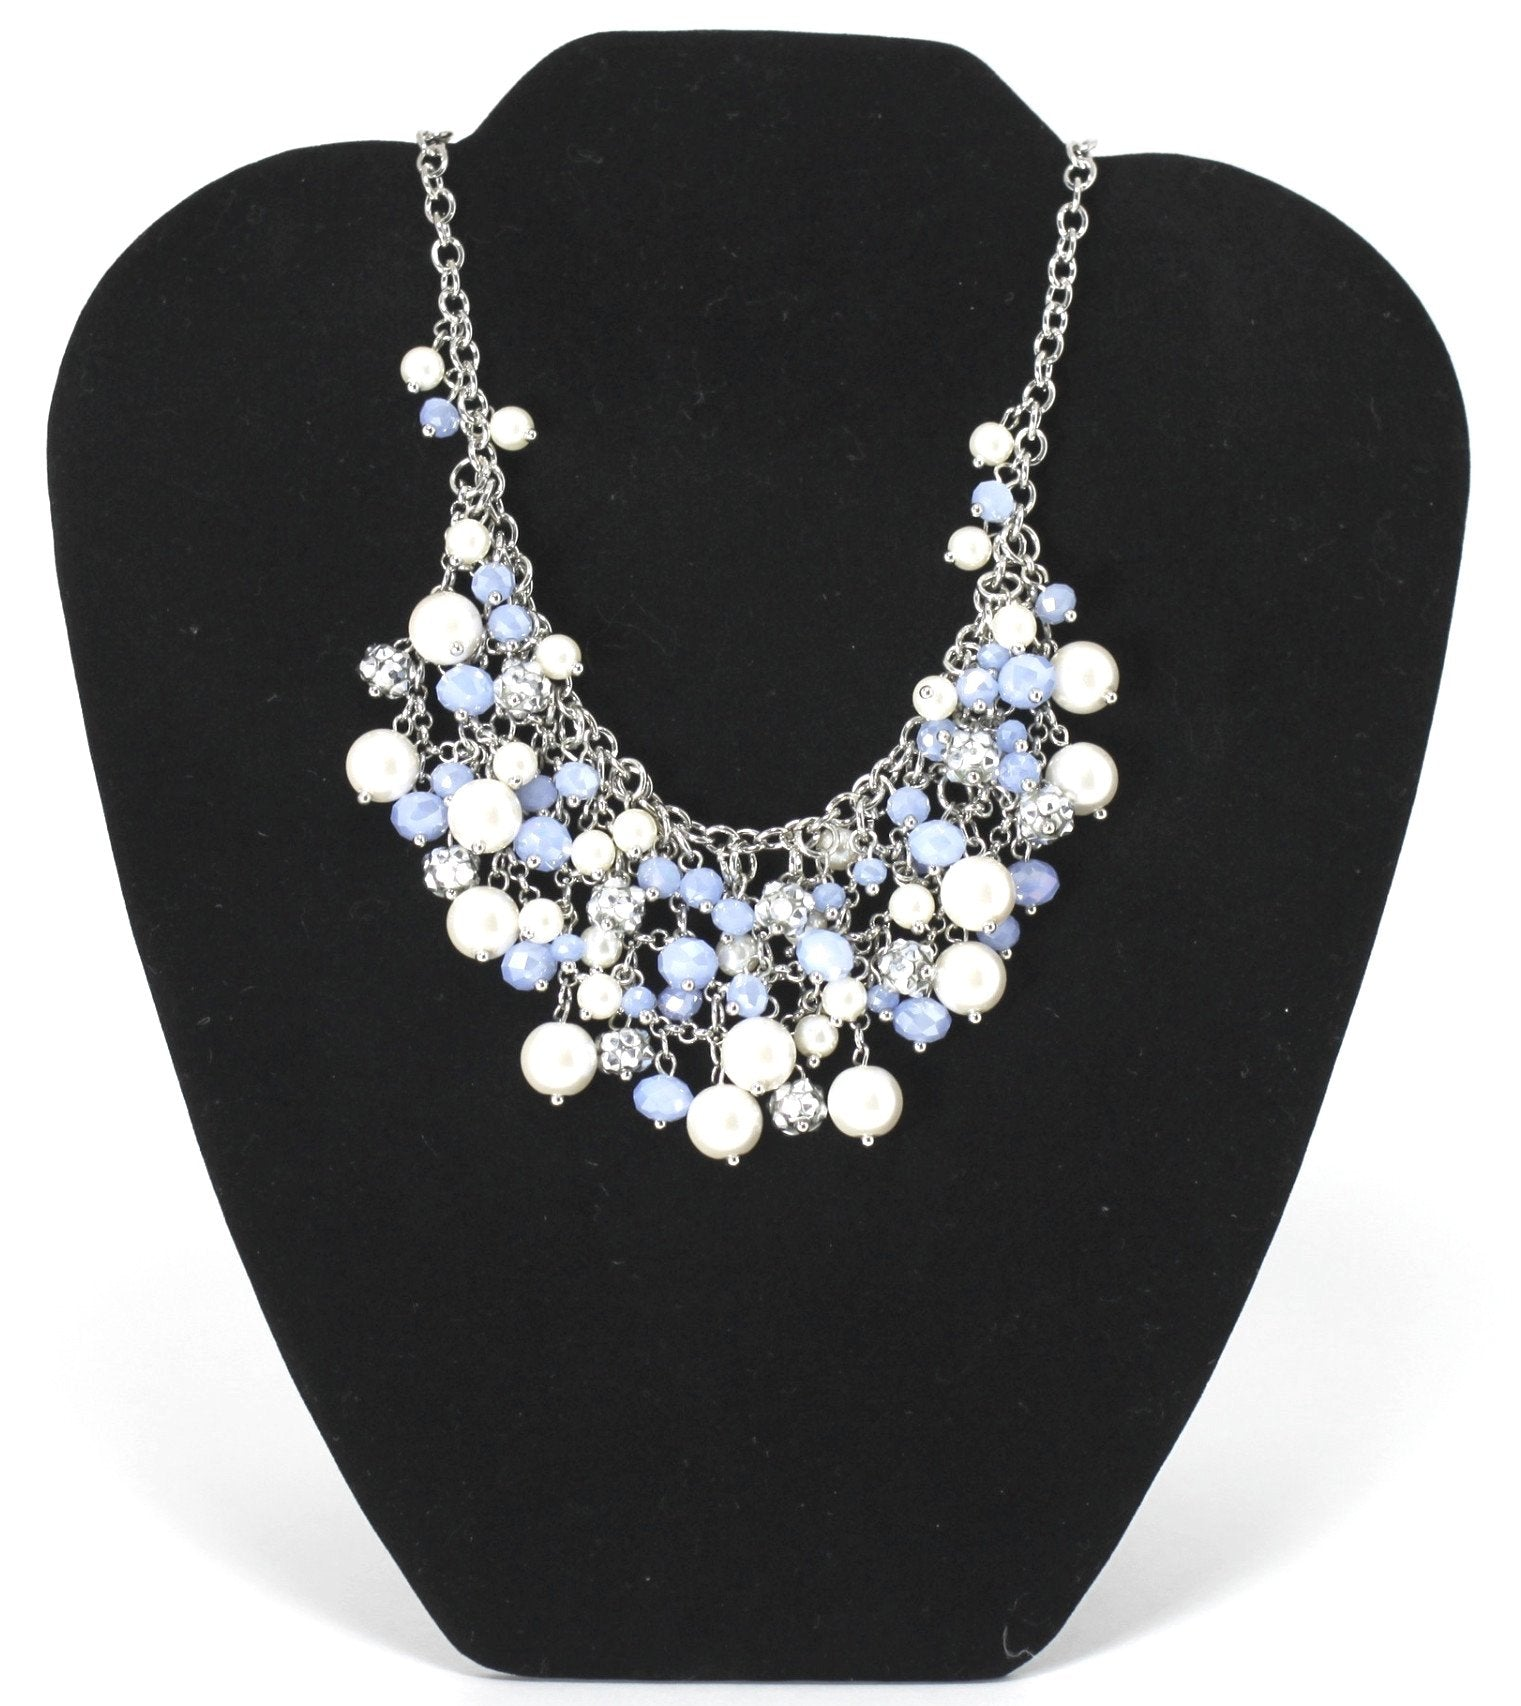 Periwinkle Blue Charm Necklace - Donated From The Designer - The Fashion Foundation